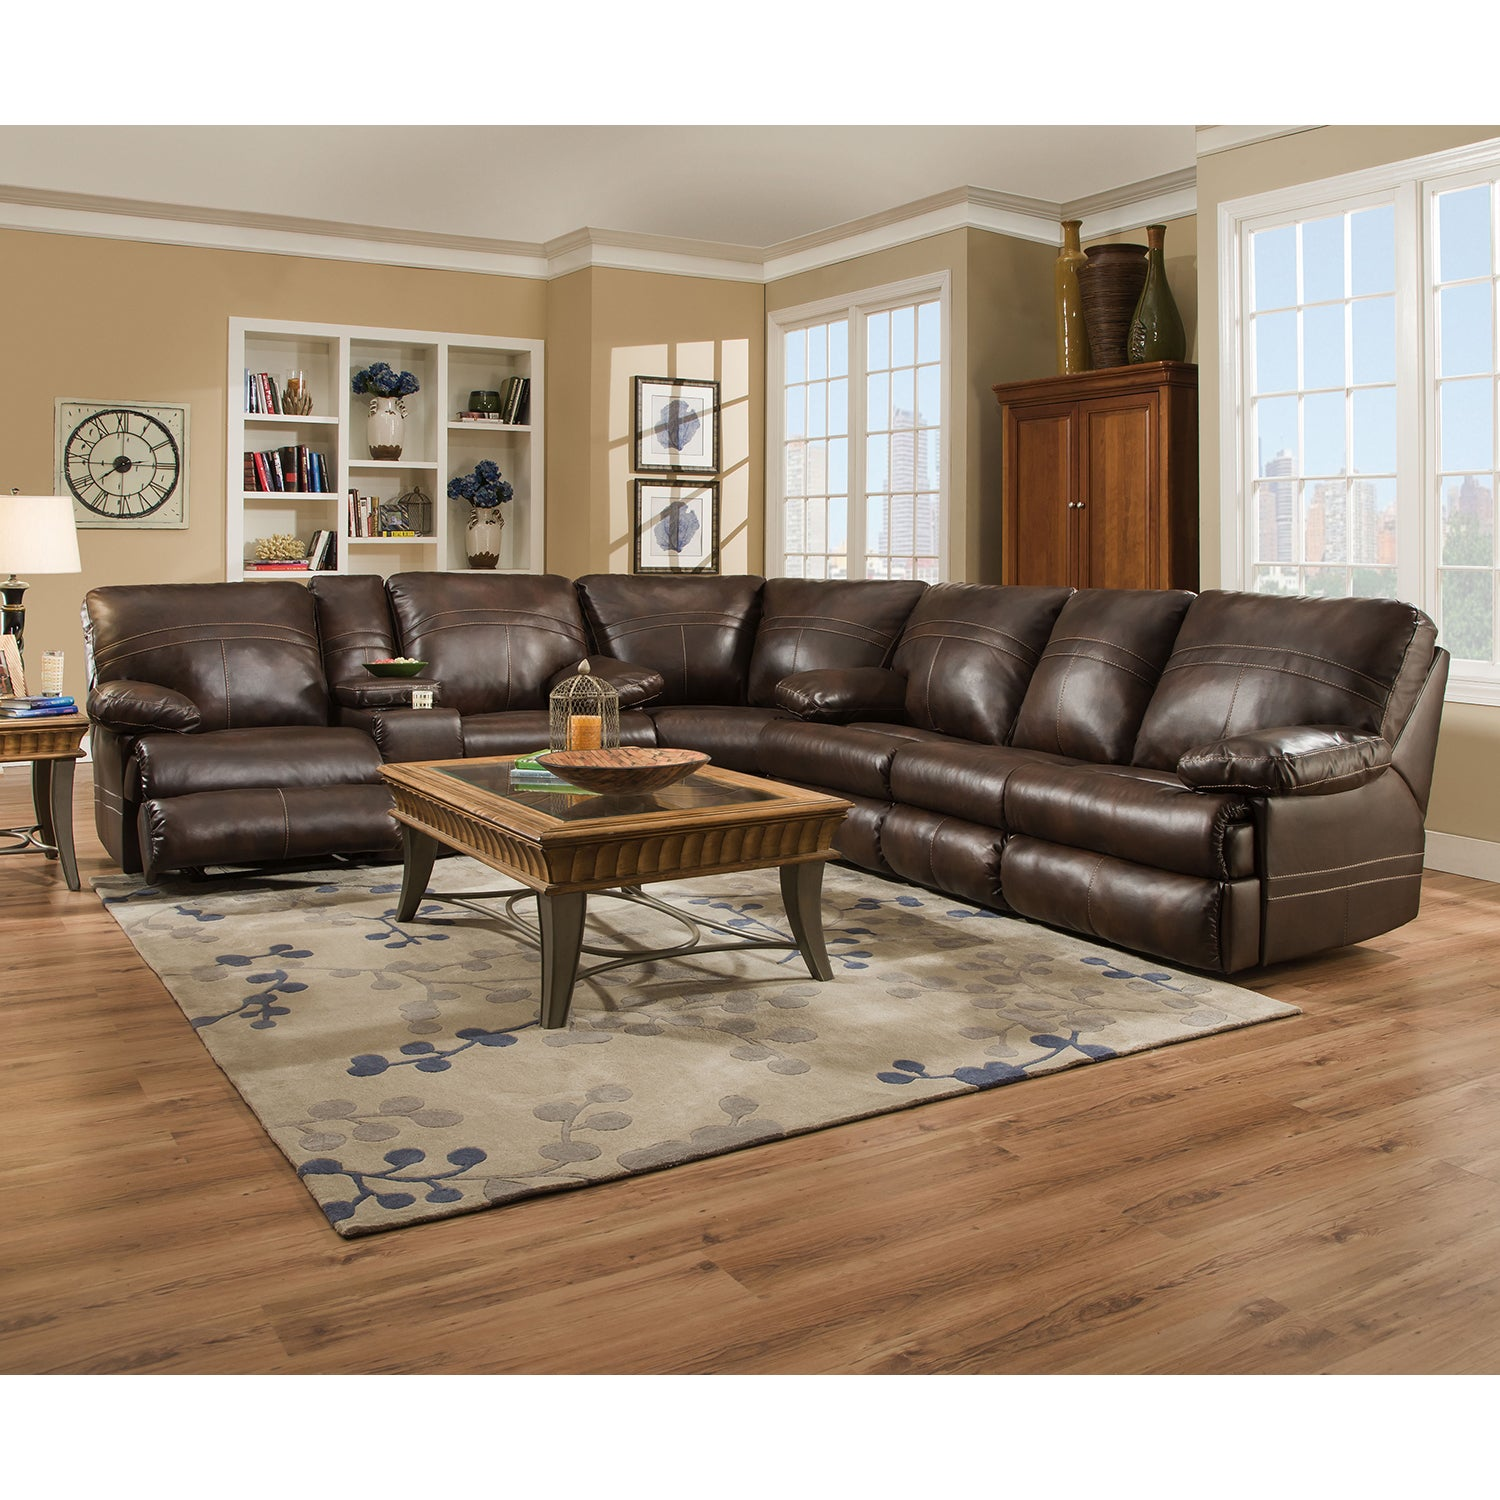 Simmons Upholstery Miracle Saddle Full Motion Sectional (...